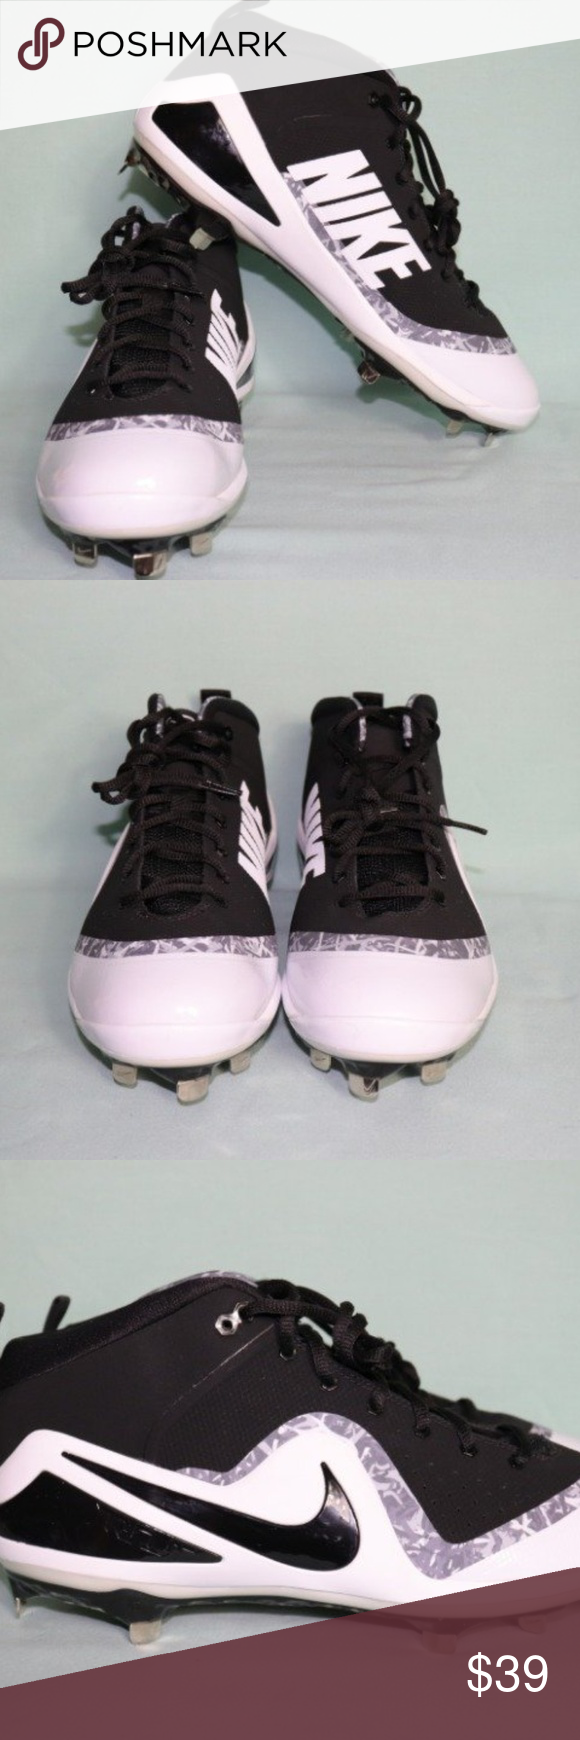 2c9e01d925b51 Baseball Cleat NIKE TROUT 4 Mid Metal Size 12 New without box model  917837-001  NIKE FORCE ZOOM TROUT 4 Mid Metal Mens Baseball Cleats Nike Shoes Athletic  ...